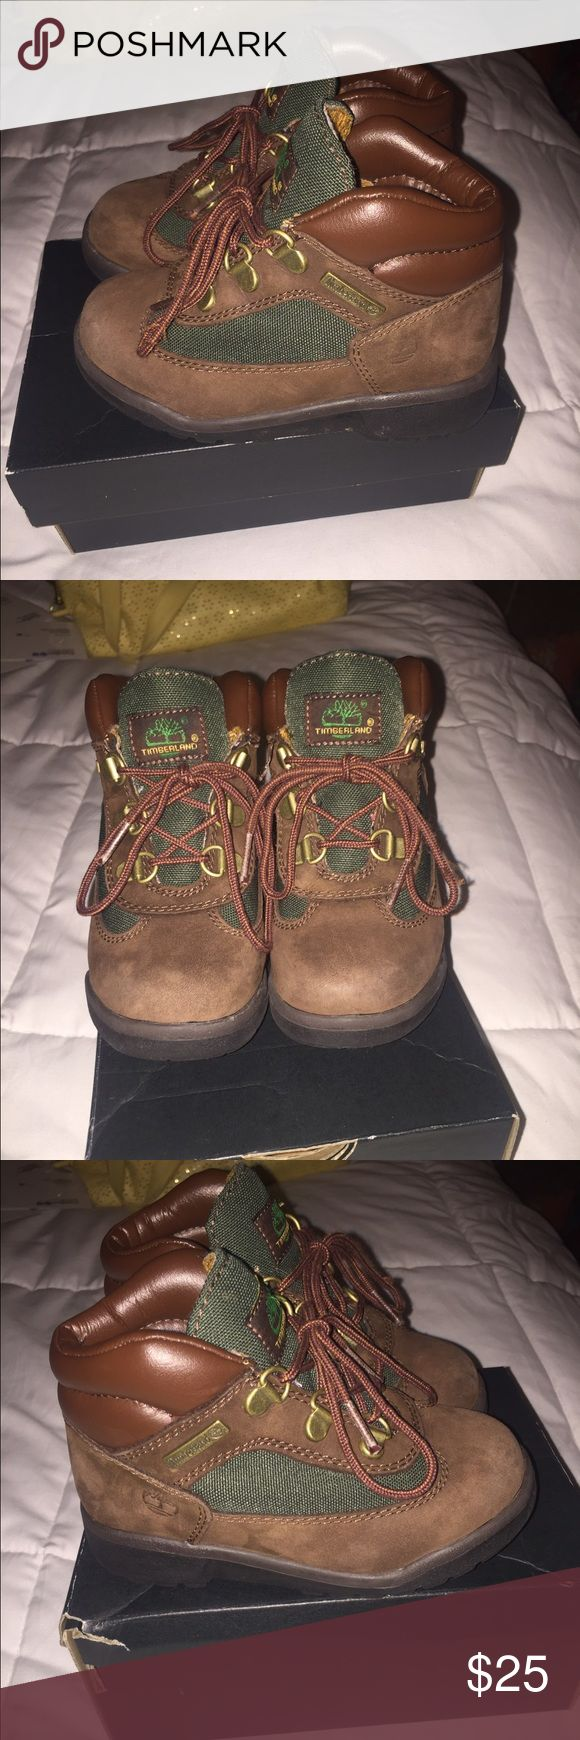 """Timberlands beef and broccoli edition Chocolate brown and green """"beef and broccoli"""" toddler boy timberland boots in good condition Timberland Shoes Boots"""